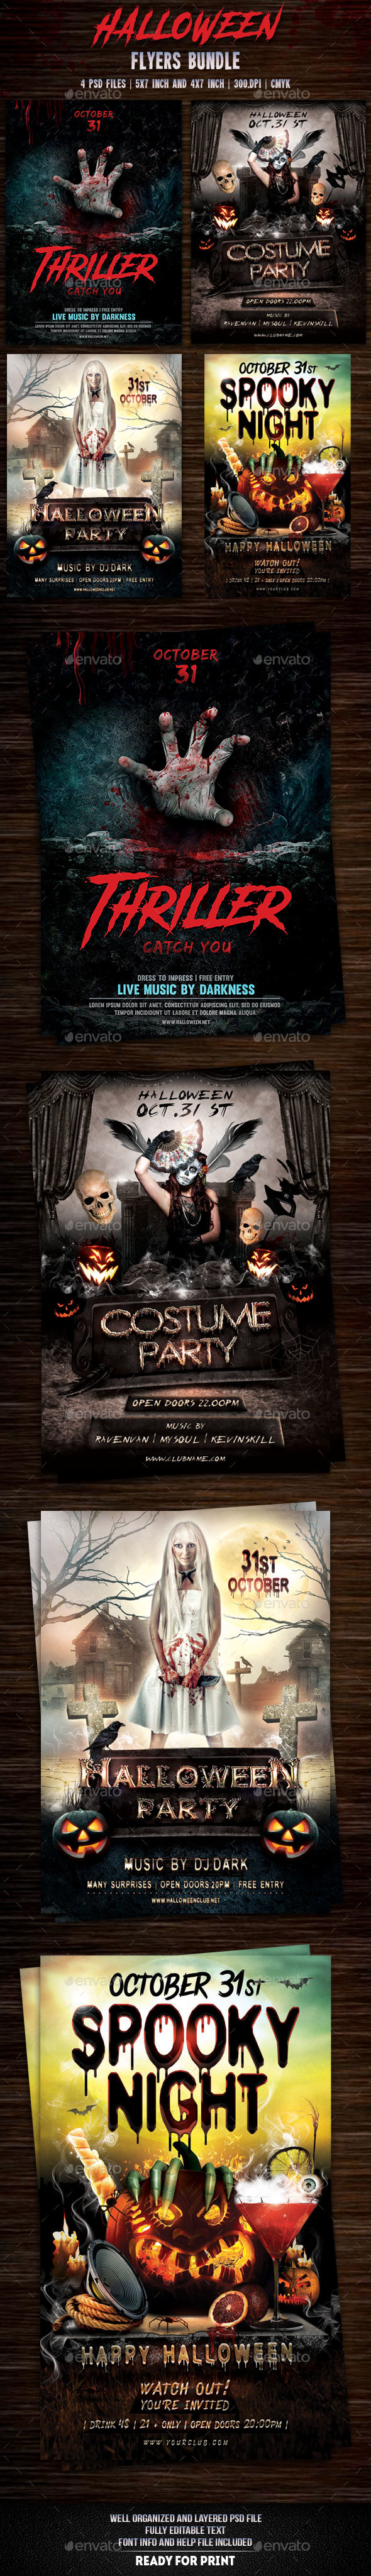 Halloween Flyers Bundle v3